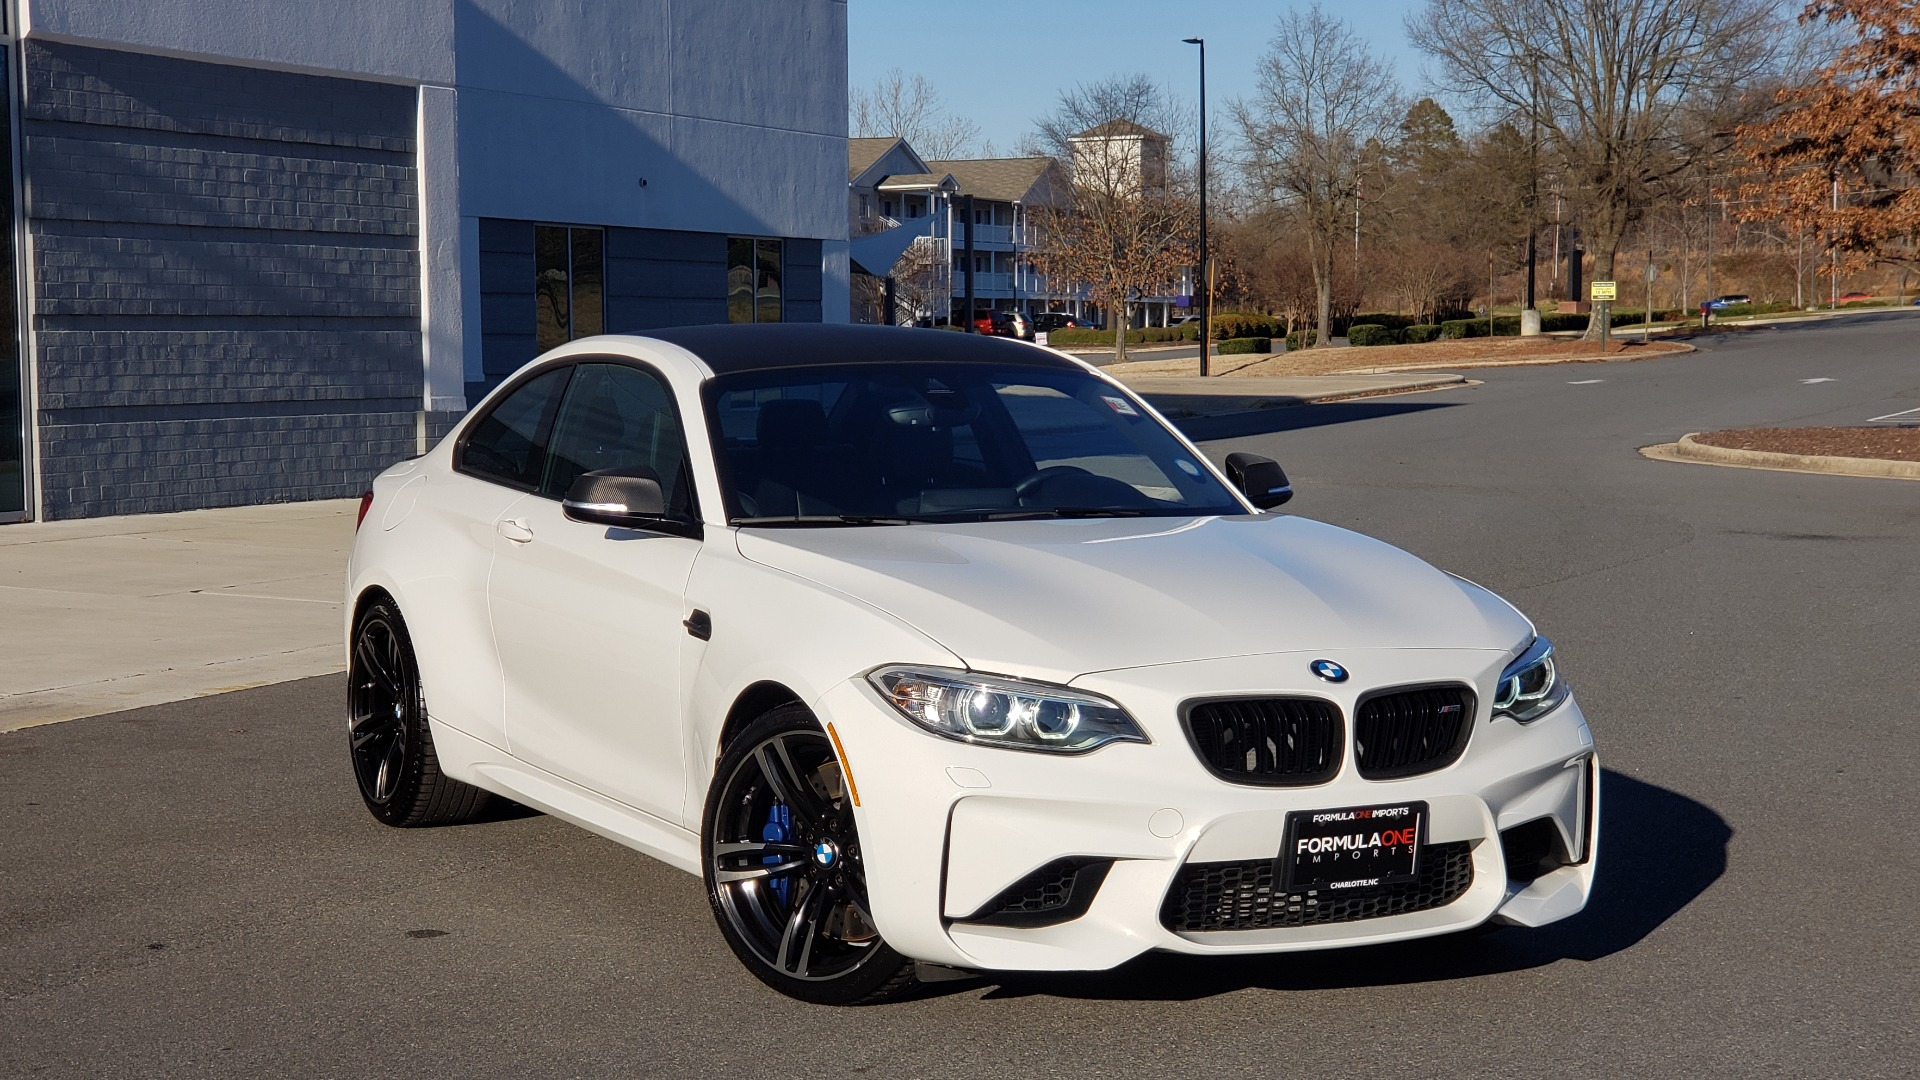 Used 2017 BMW M2 COUPE / MANUAL / EXEC PKG / NAV / WIFI / PDC / REARVIEW for sale Sold at Formula Imports in Charlotte NC 28227 12